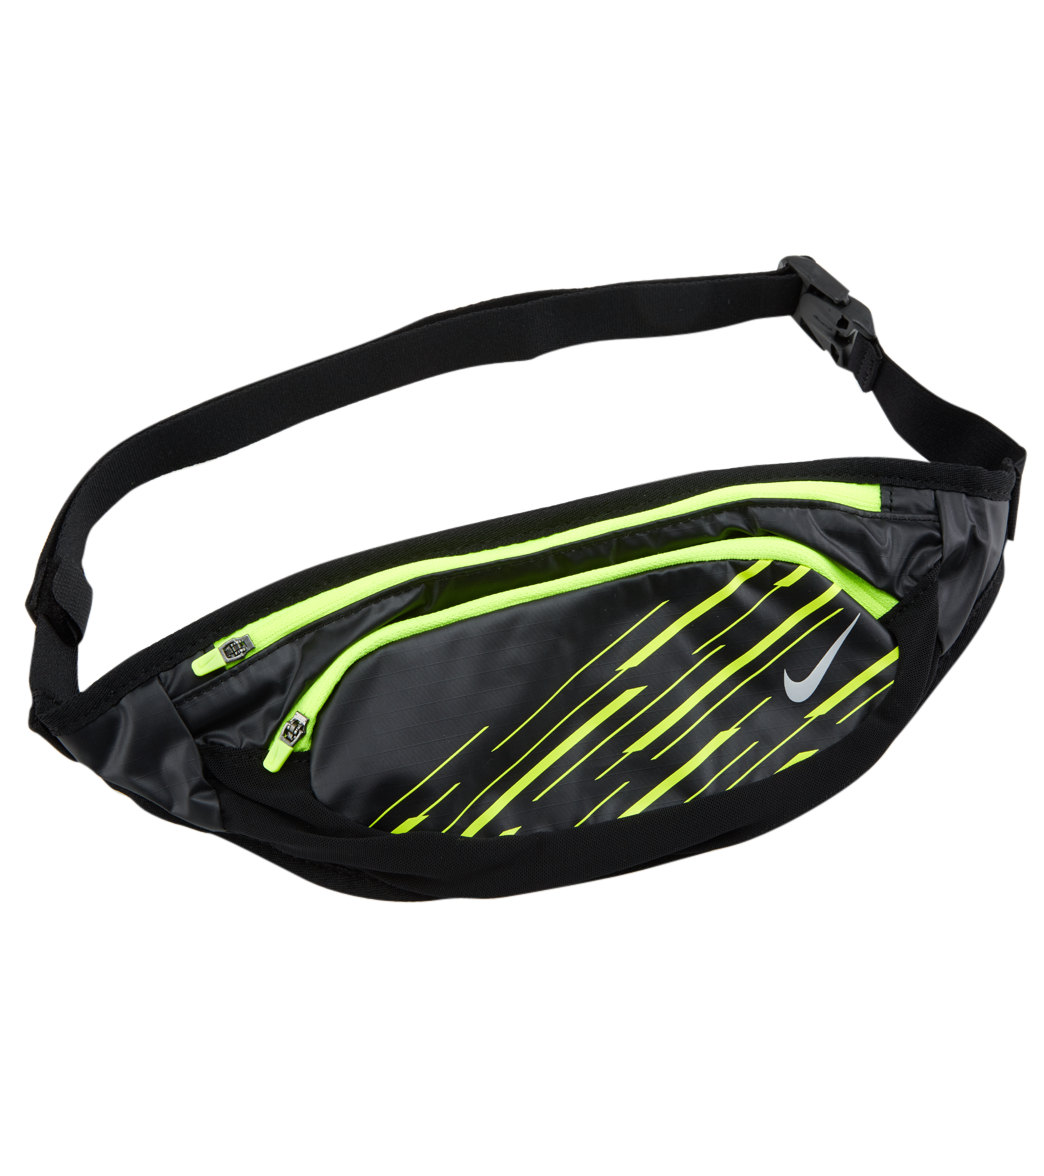 2e5a8c4e43 Nike Large Capacity Waist pack at SwimOutlet.com